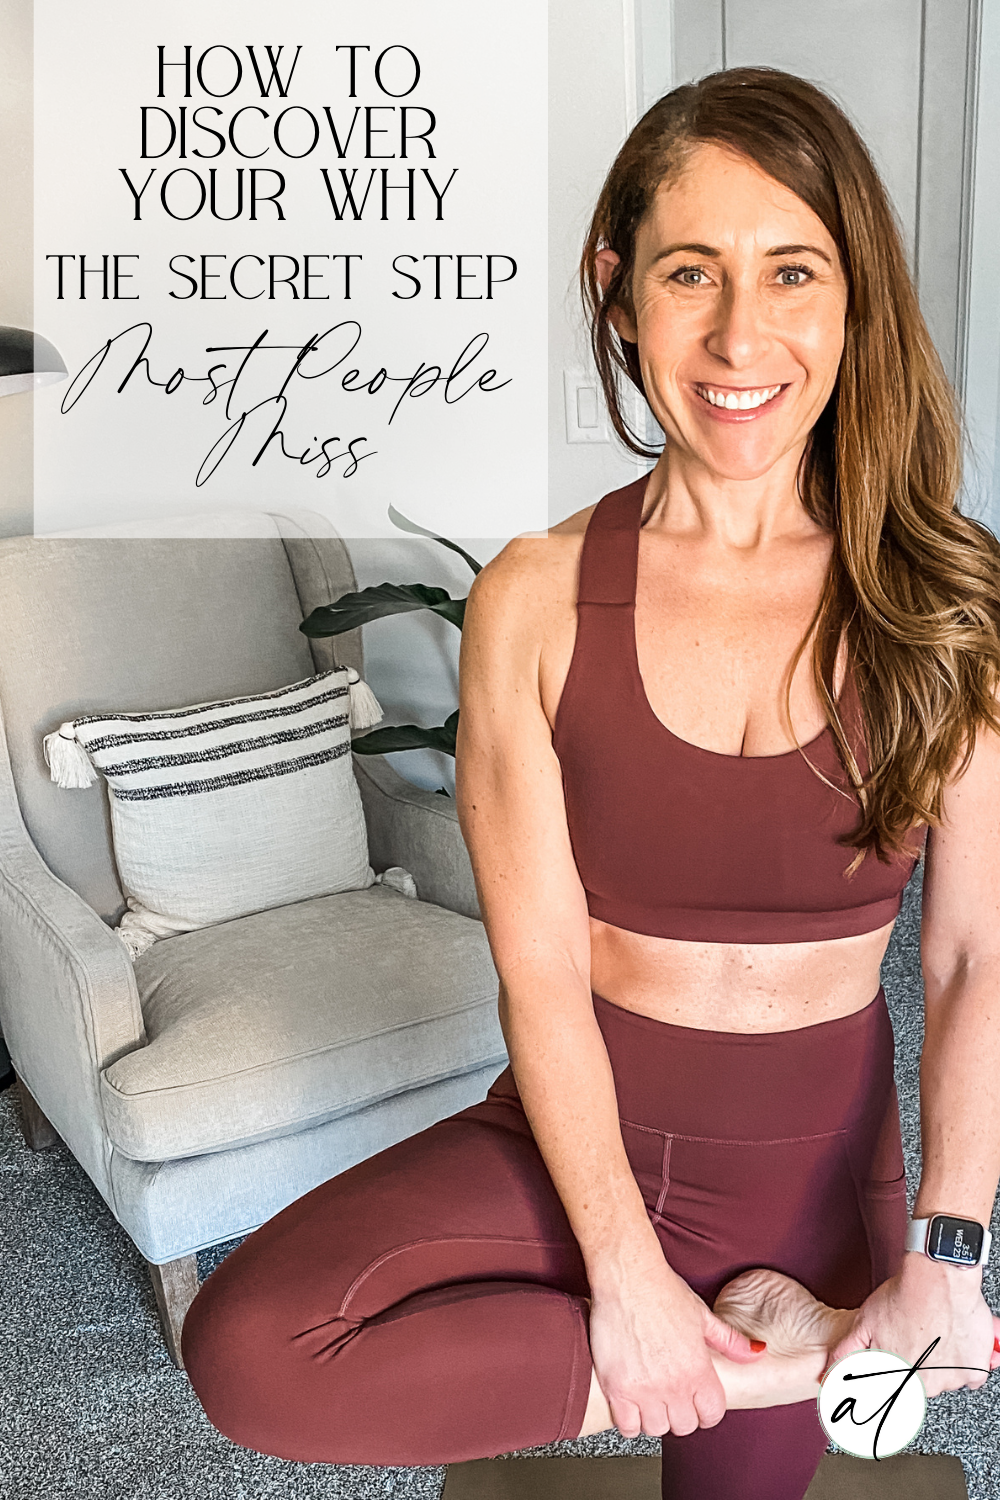 Discover Your Why: This secret step is HUGE and one most people totally miss. If you are struggling to stay motivated this step is for you!